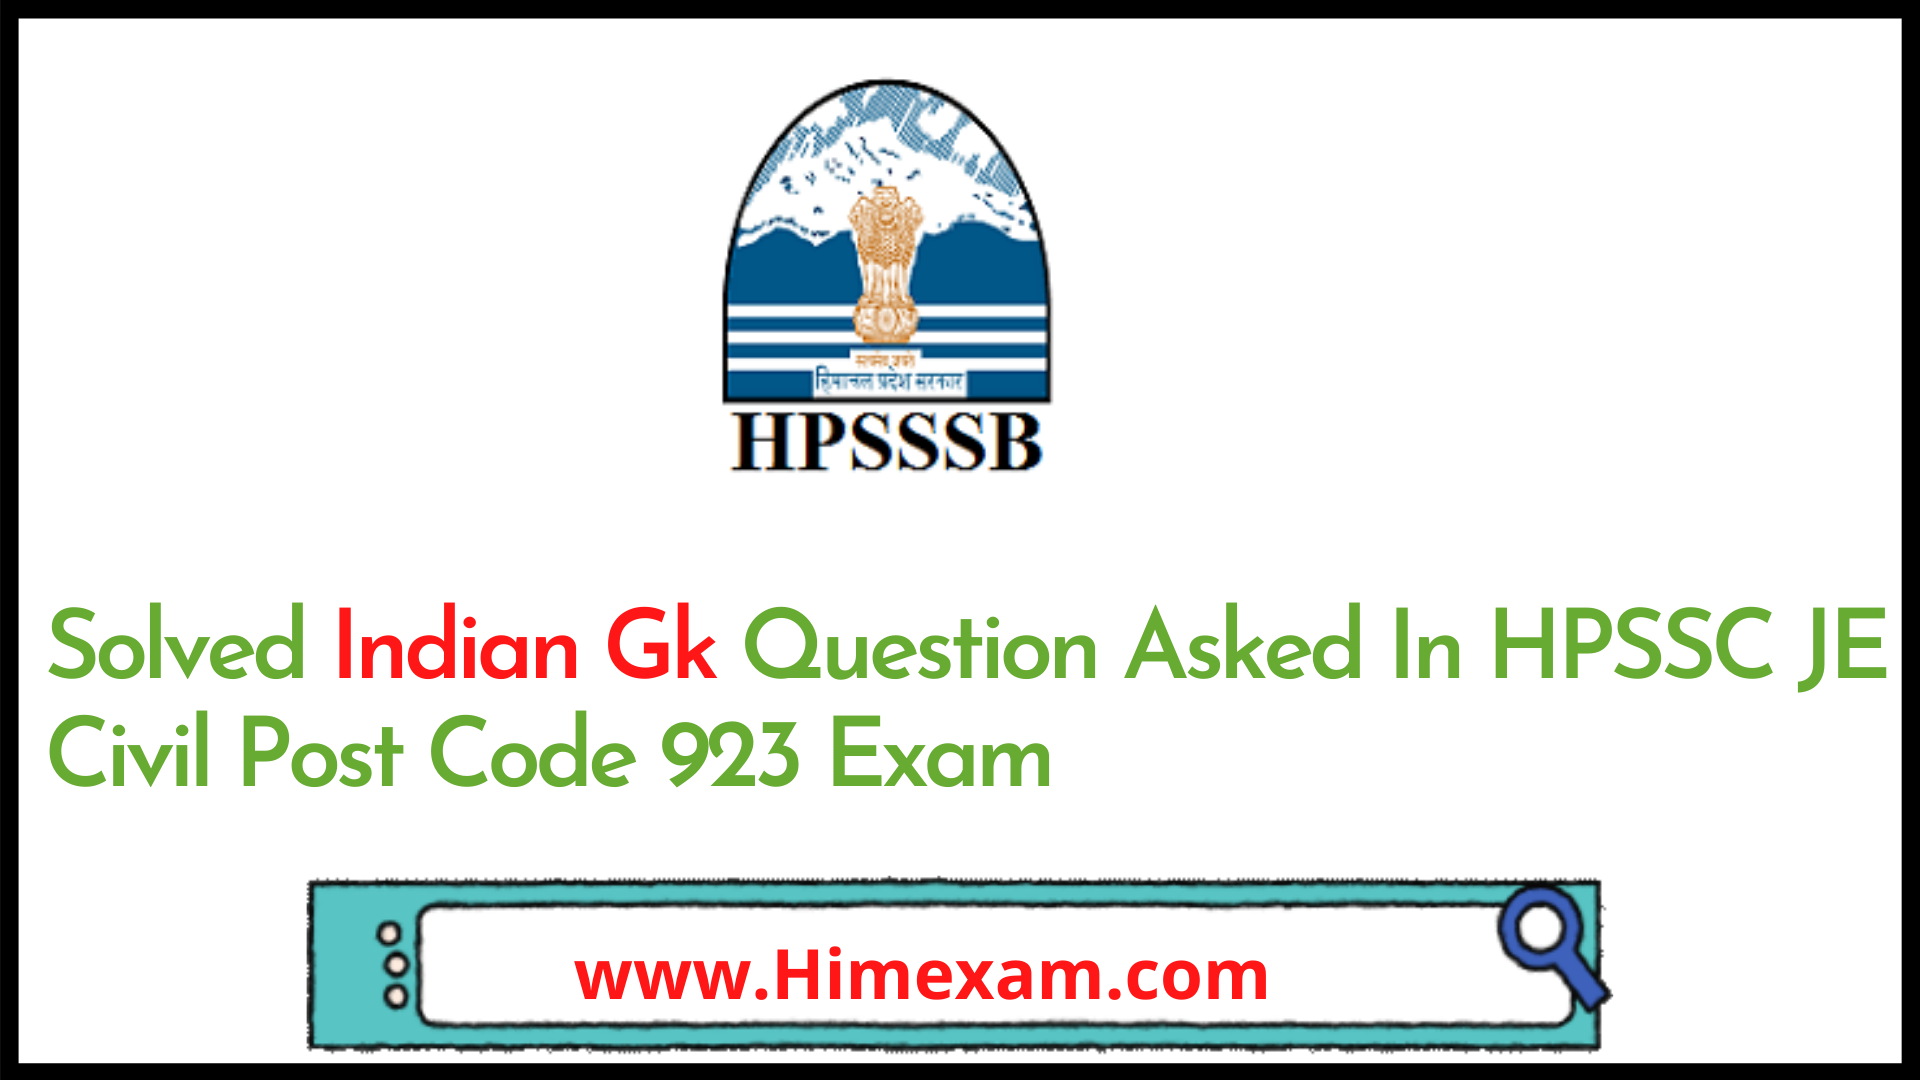 Solved Indian Gk Question Asked In HPSSC JE Civil Post Code 923 Exam